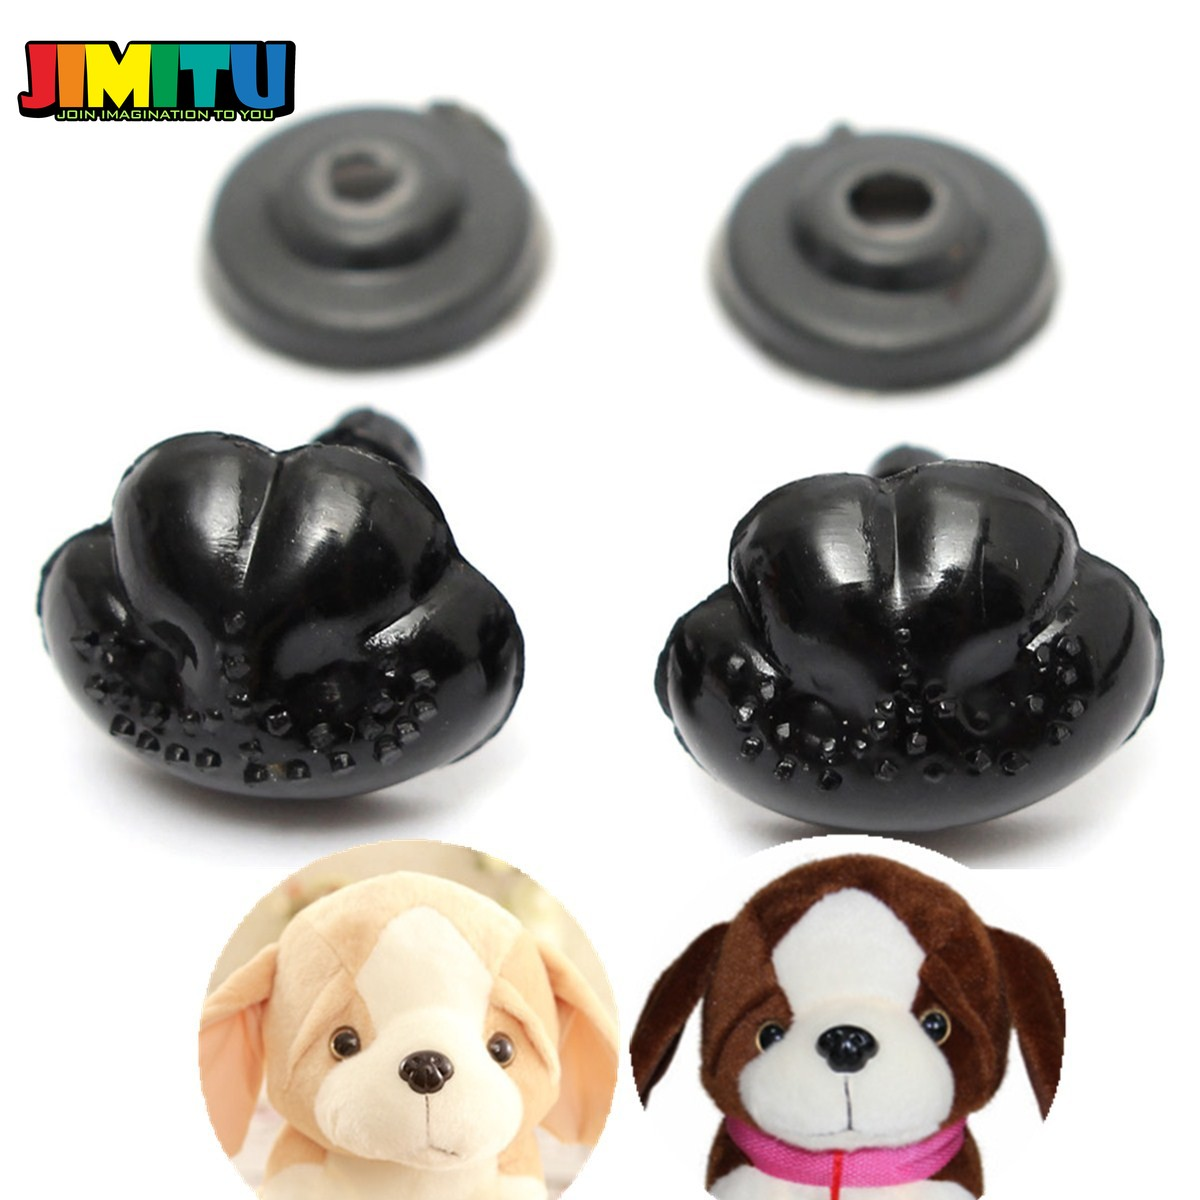 Animal 4 Per Pack 25mm Dog Craft Safety Noses